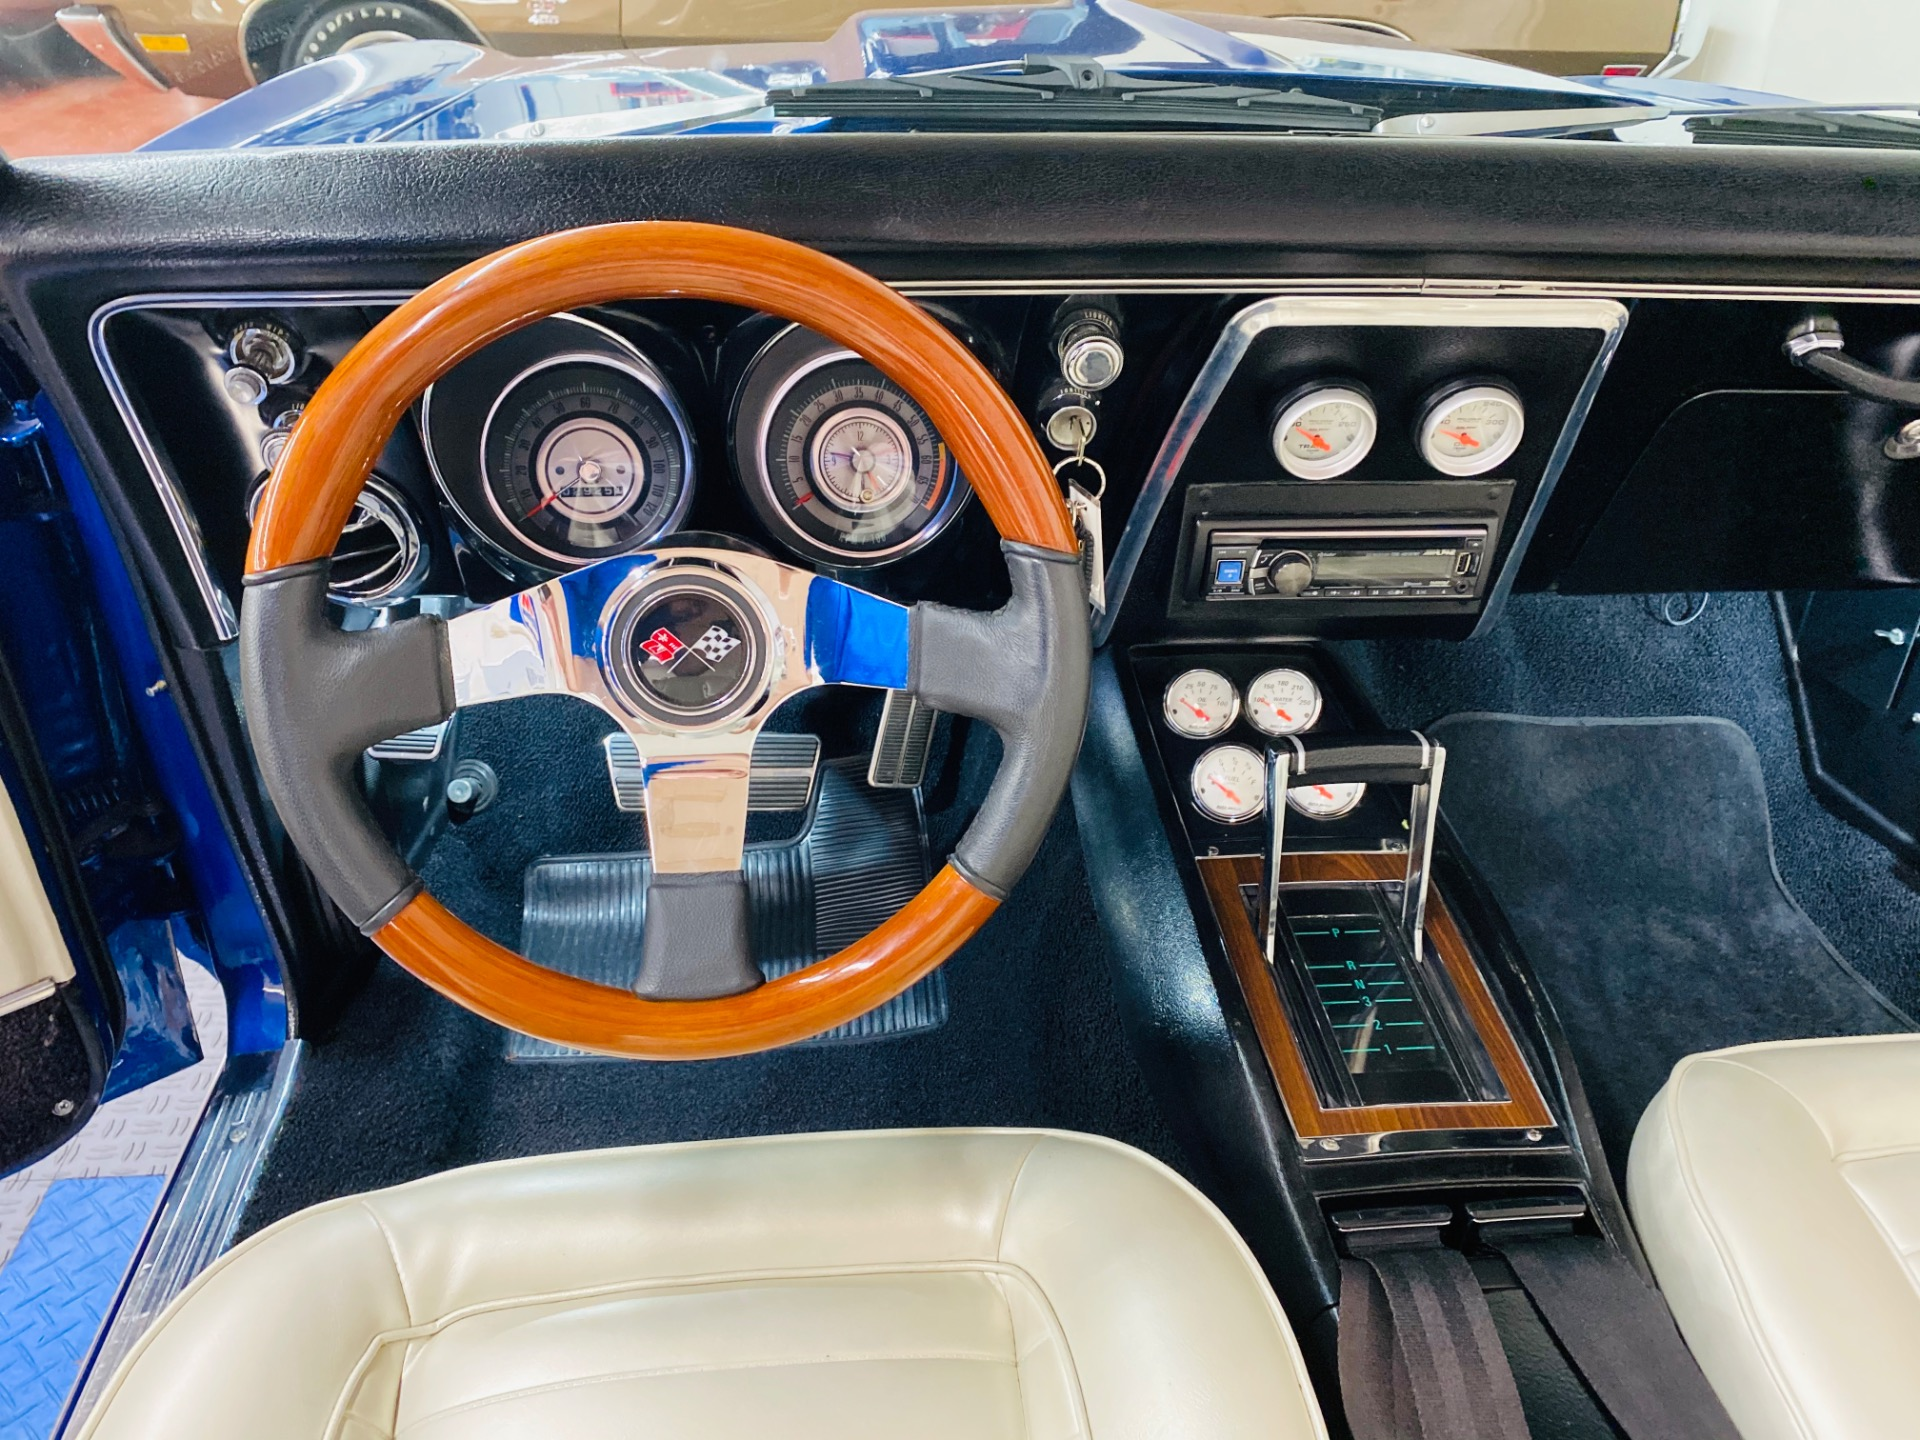 Used 1968 Chevrolet Camaro -CONVERTIBLE- SHOW READY - 383 STROKER - SEE VIDEO - | Mundelein, IL